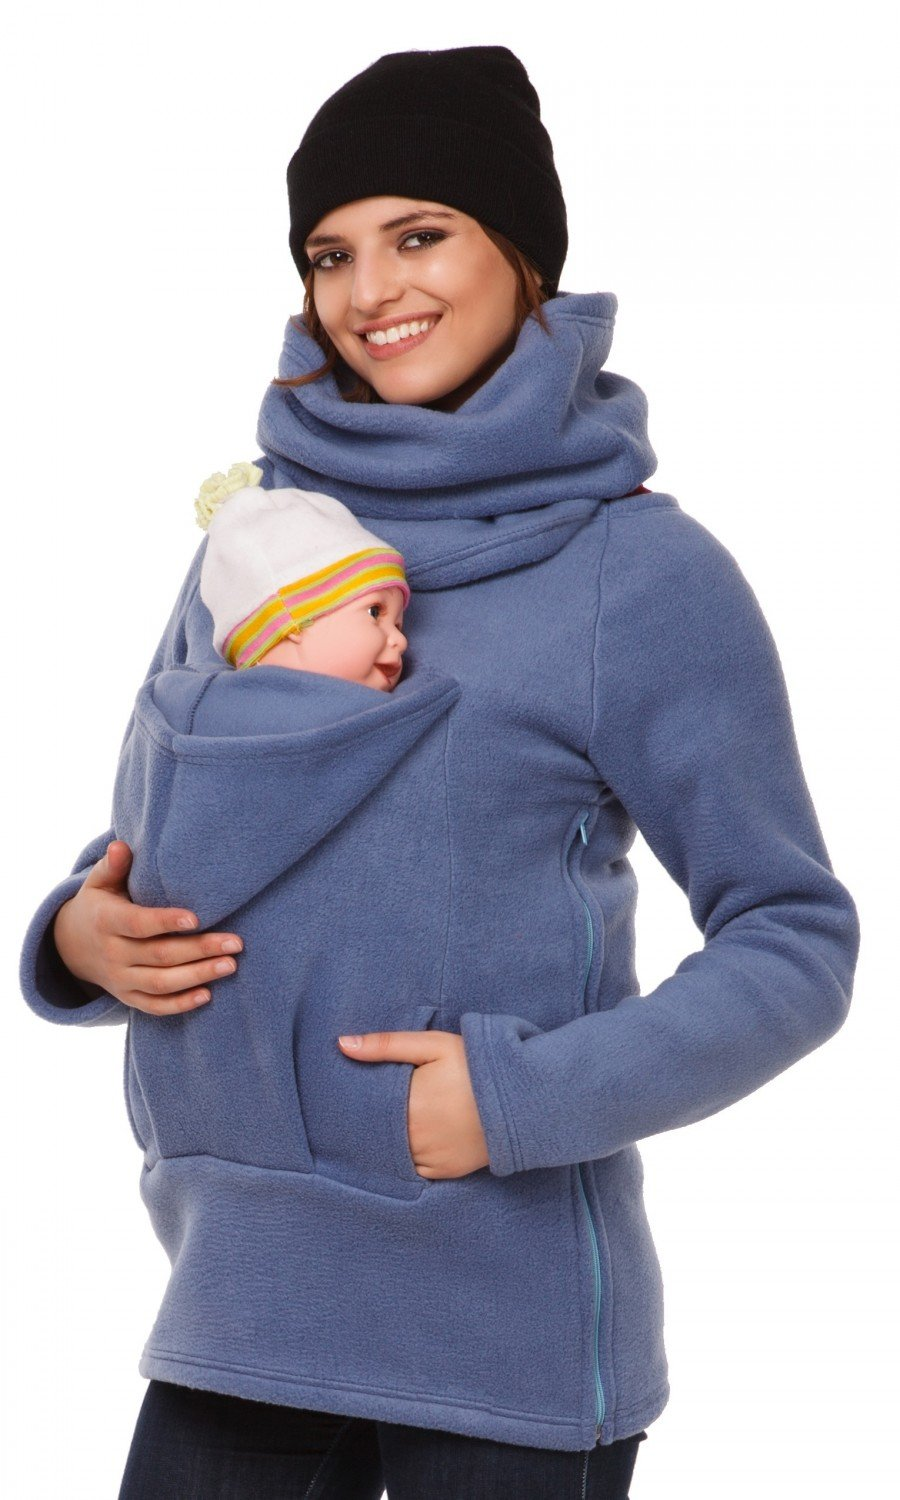 Happy Mama. Women's Maternity Fleece Hoodie Back Front Carrier Baby Holder. 030p carrierhood_030